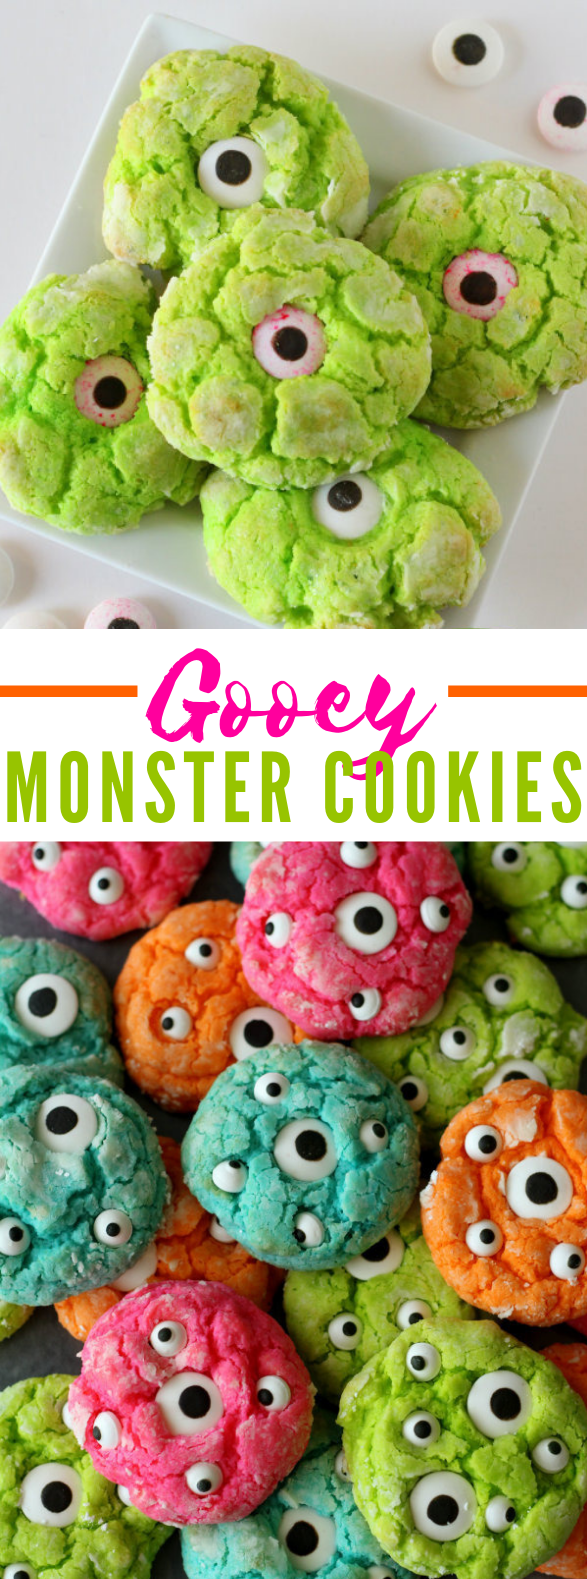 GOOEY MONSTER COOKIE RECIPE #desserts #holiday